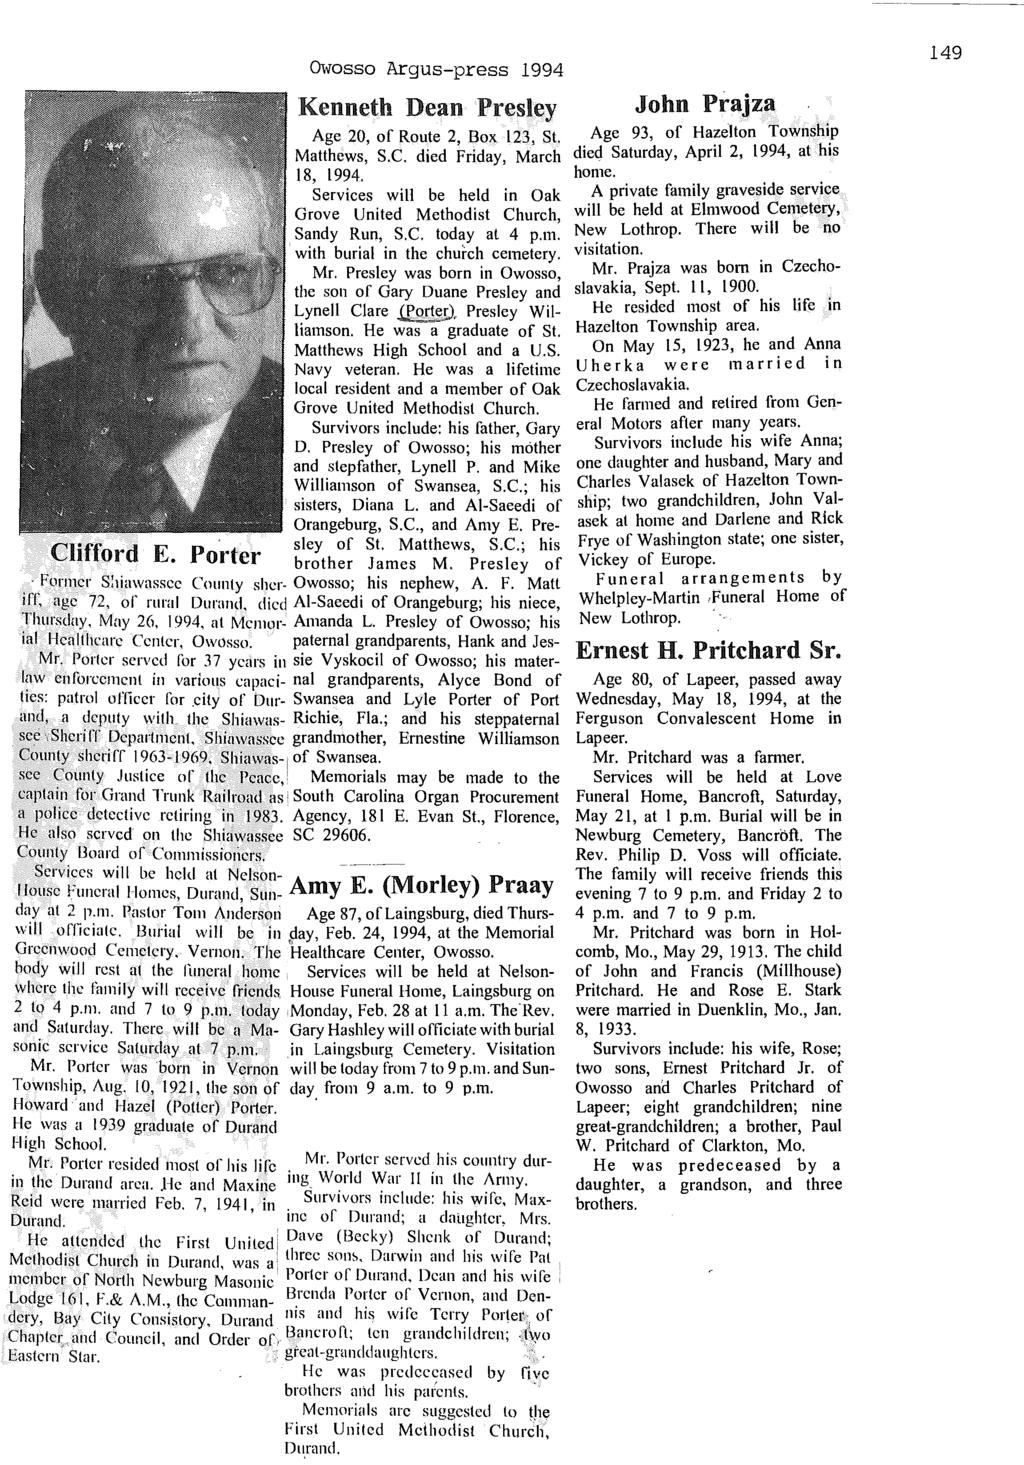 OWosso Argus-press 1994 Kenneth Dean Presley John Prajza Age 20, of Route 2, Box 123, St. Age 93, of Hazelton Township Matthews, S.C. died Friday, March died Saturday, April 2, 1994, at his 18, 1994.